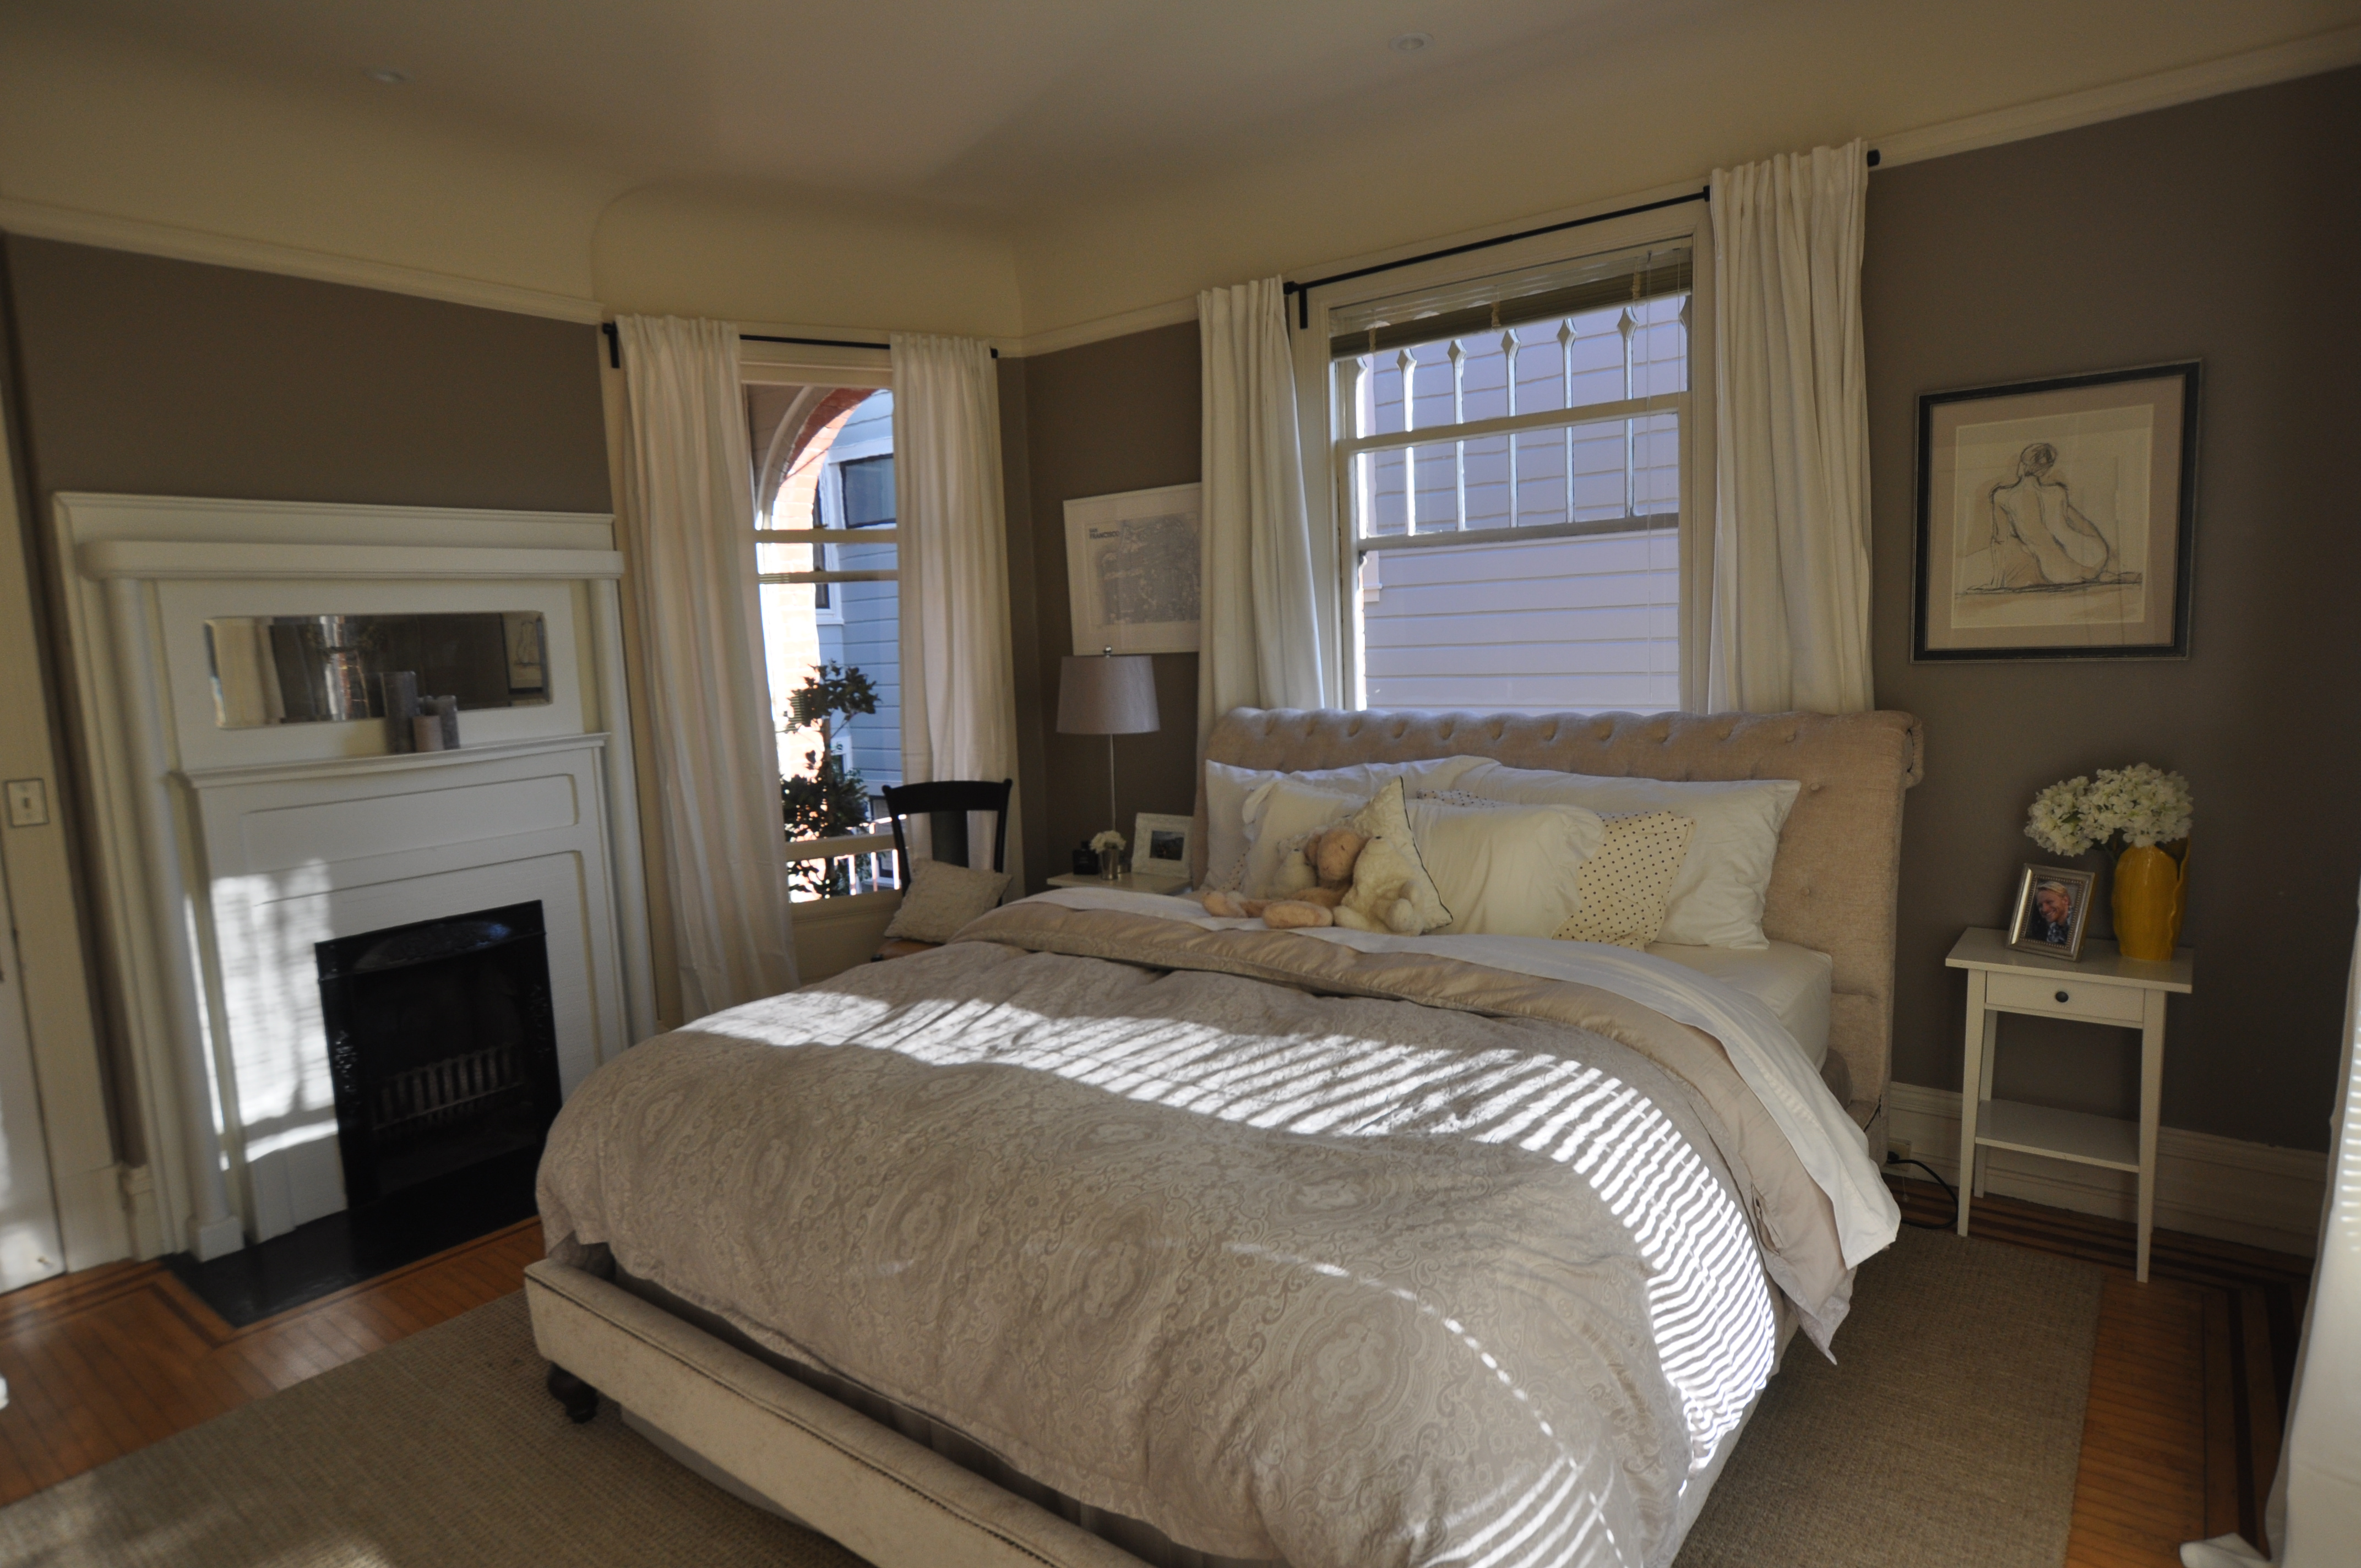 Duck Egg Blue And Taupe Bedroom Mark Cooper Research Grey And ..